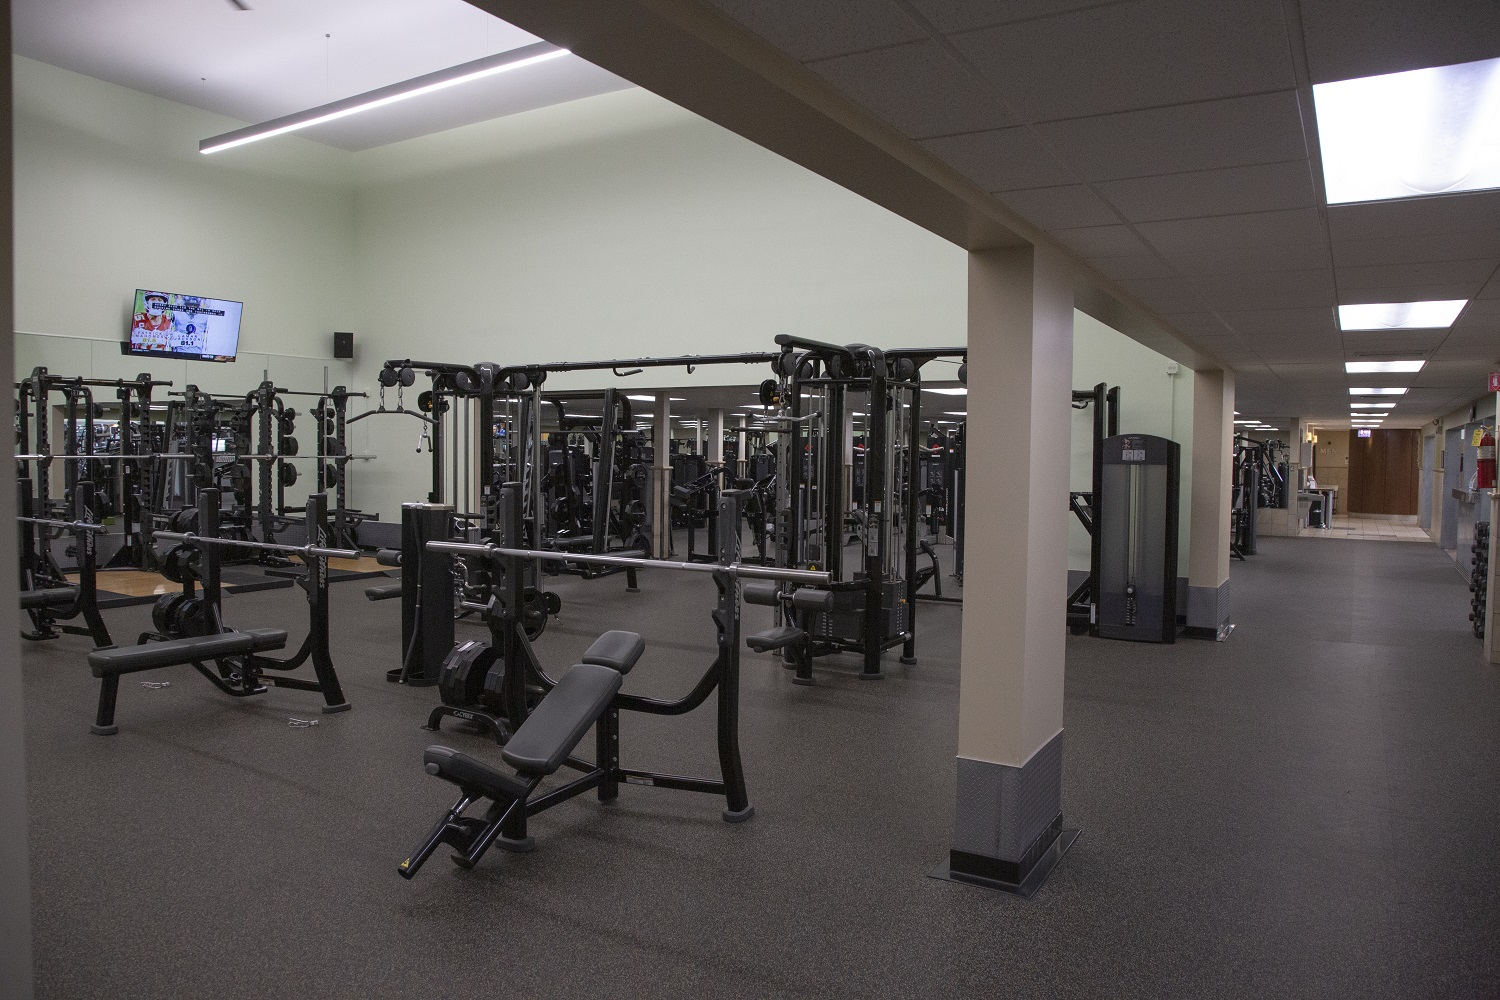 Photo of the FFC Old Town strength machines.